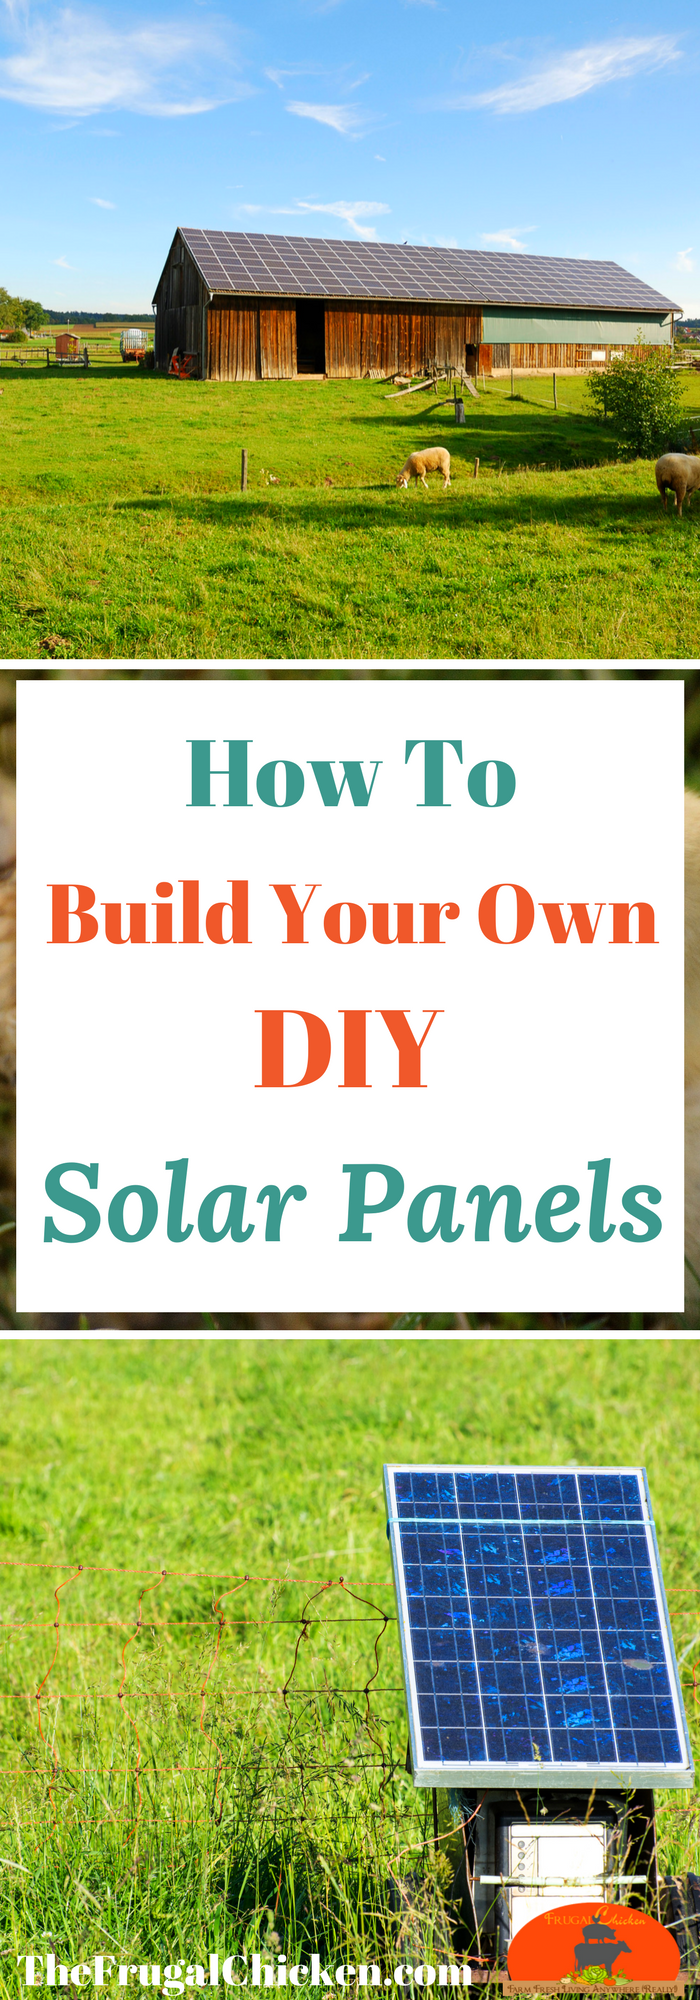 Building Your Own Solar Panels Is Easy If You Have